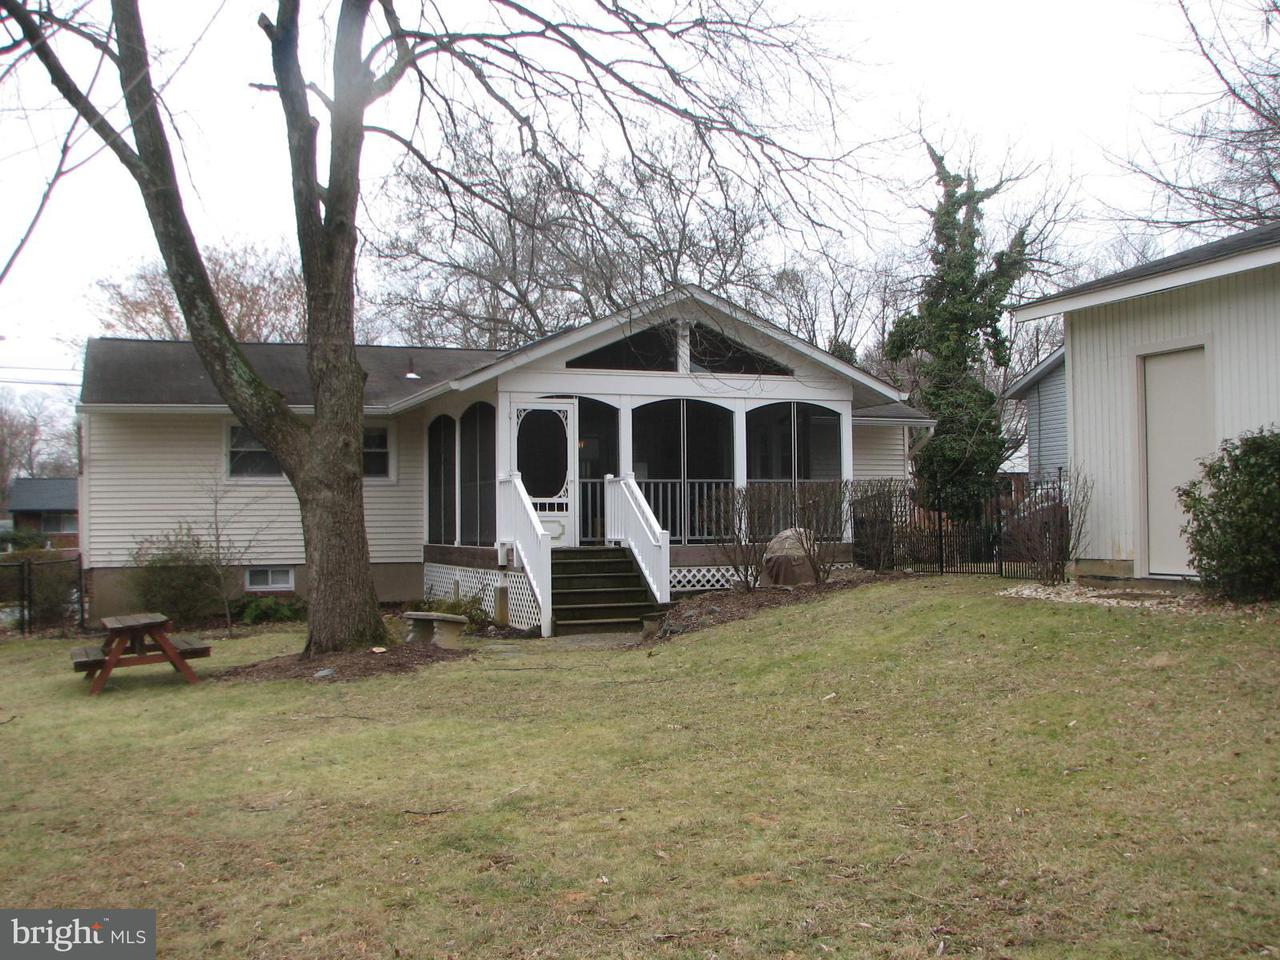 Additional photo for property listing at 706 Ware St Sw 706 Ware St Sw Vienna, Virginia 22180 Verenigde Staten